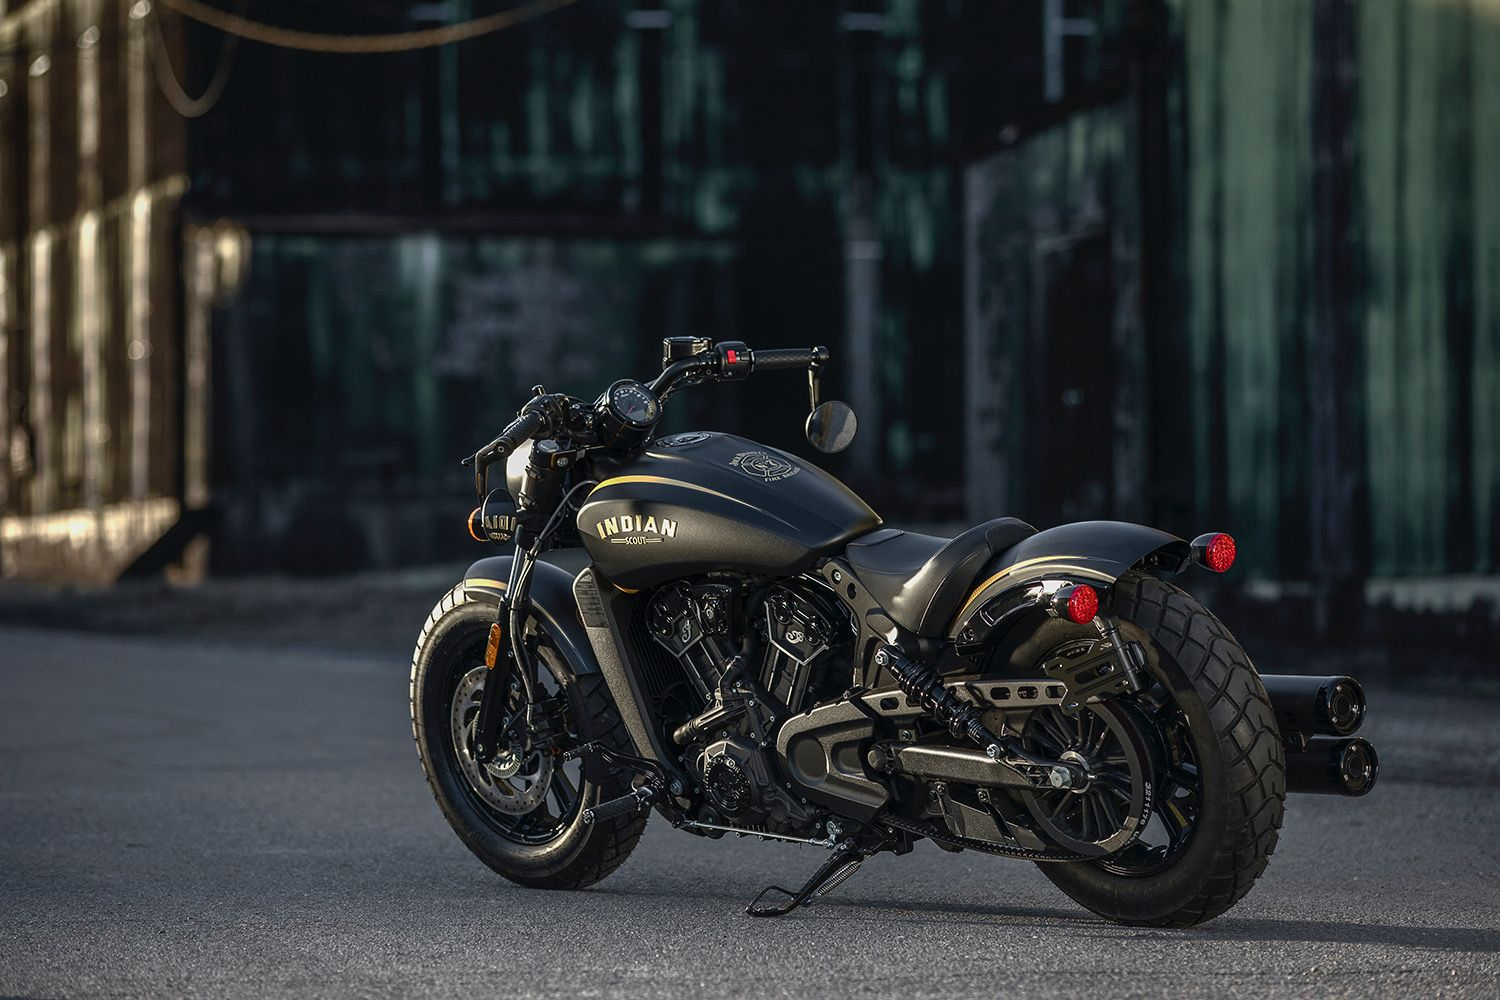 Pin By Siriustar On Motorcycle Indian Scout Indian Motorcycle Bobber [ 1000 x 1500 Pixel ]